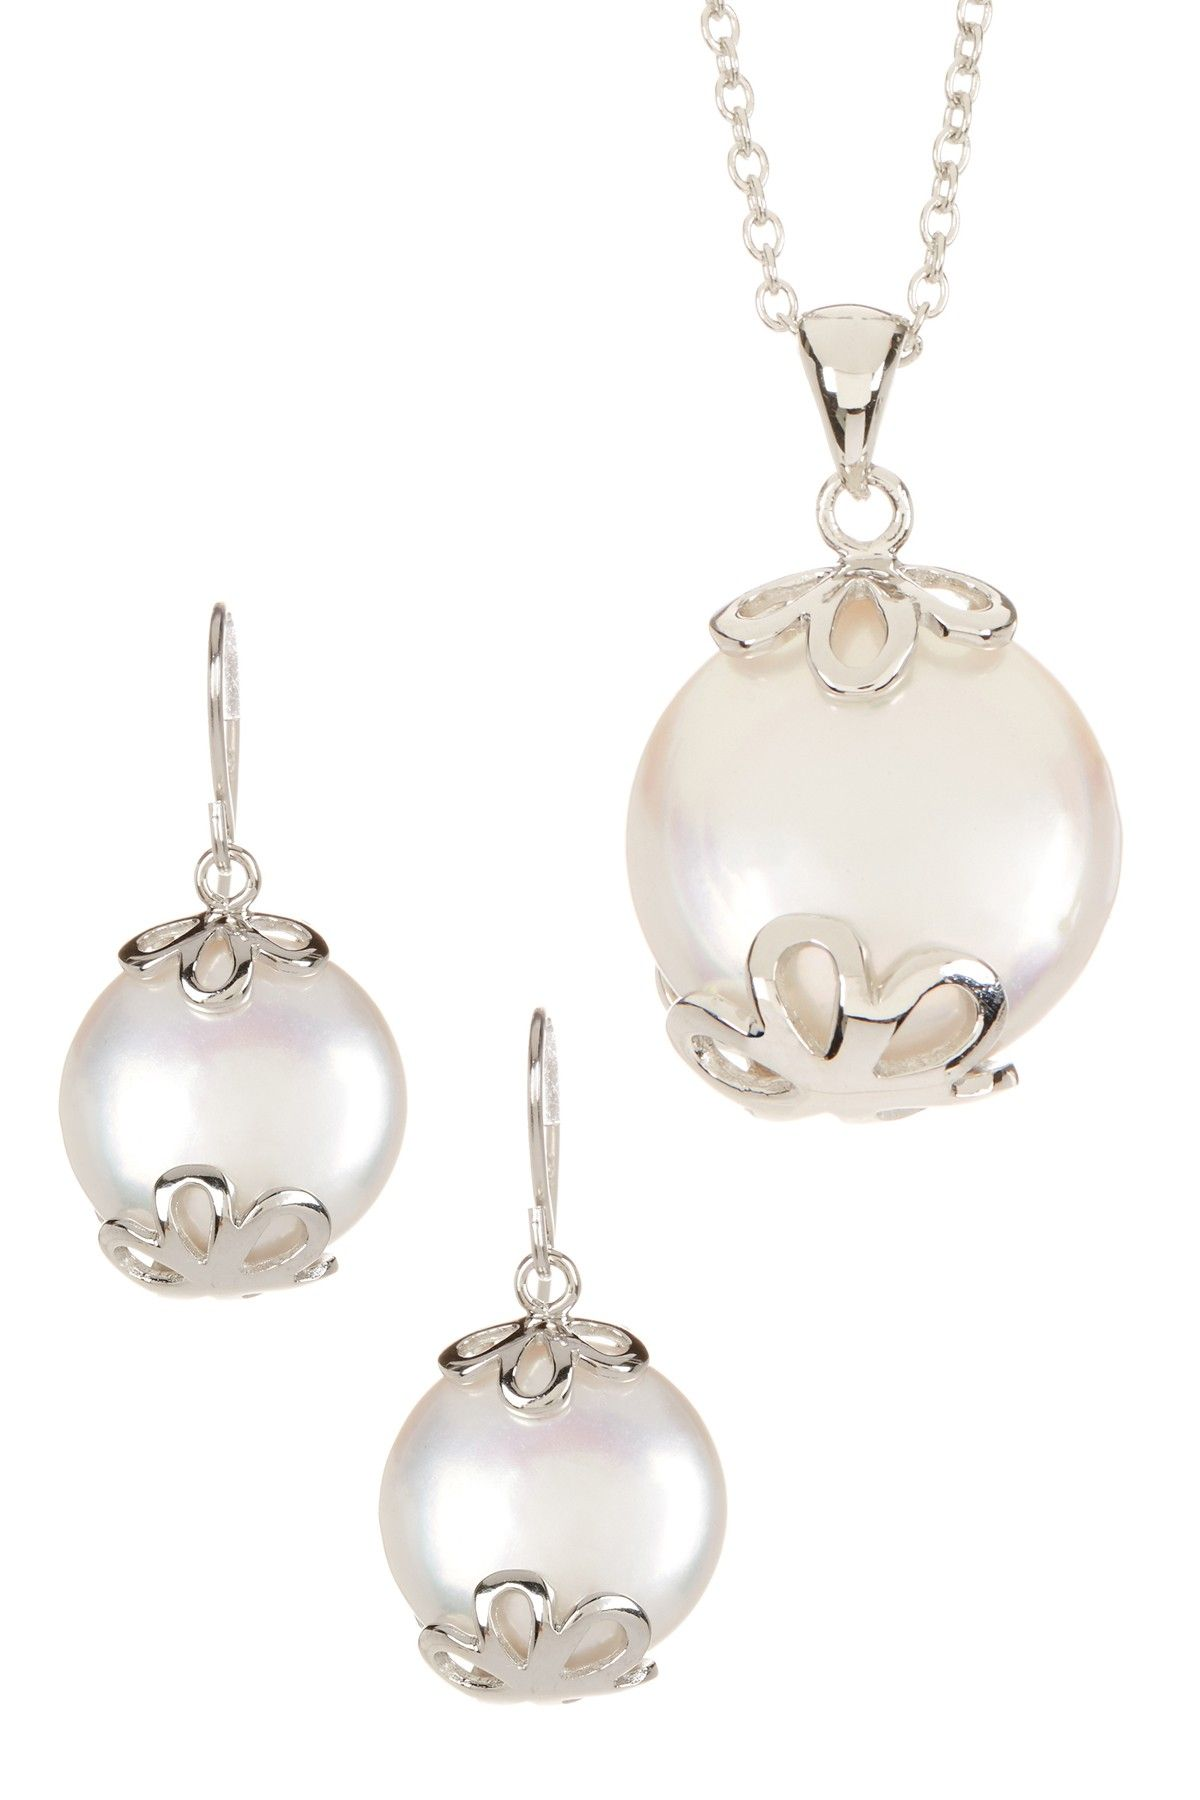 Splendid Pearls 14-14.5mm White Freshwater Coin Pearl Necklace & Dangle Earrings Set